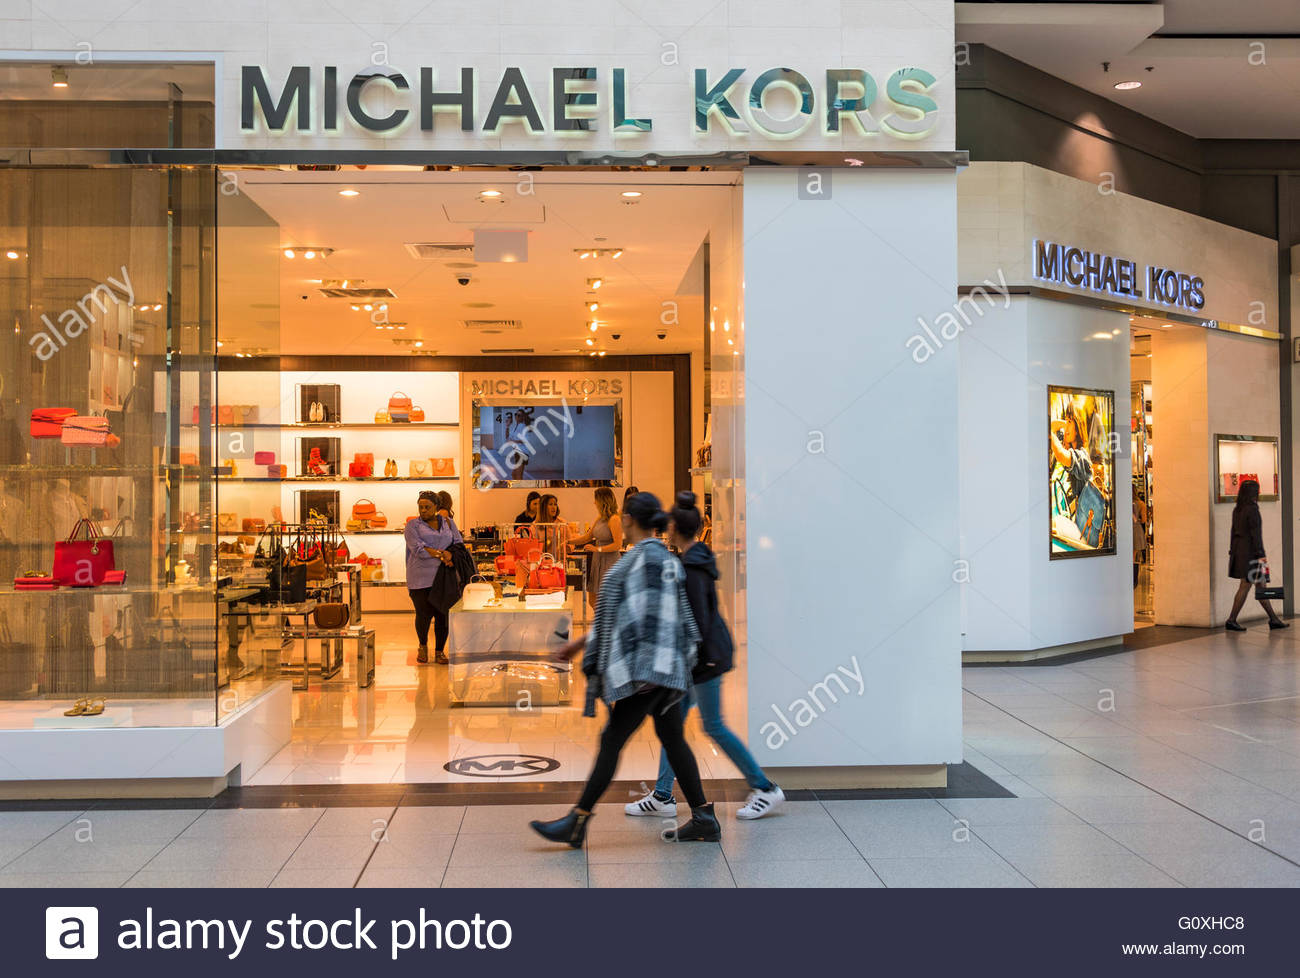 Michael Kors Service Promise. Memorable service is at the heart of Michael Kors. We are committed to making shopping a breeze, to offering the biggest selection of the absolute best products, and to giving you style insight and insider access that works for your 24/7 lifestyle.